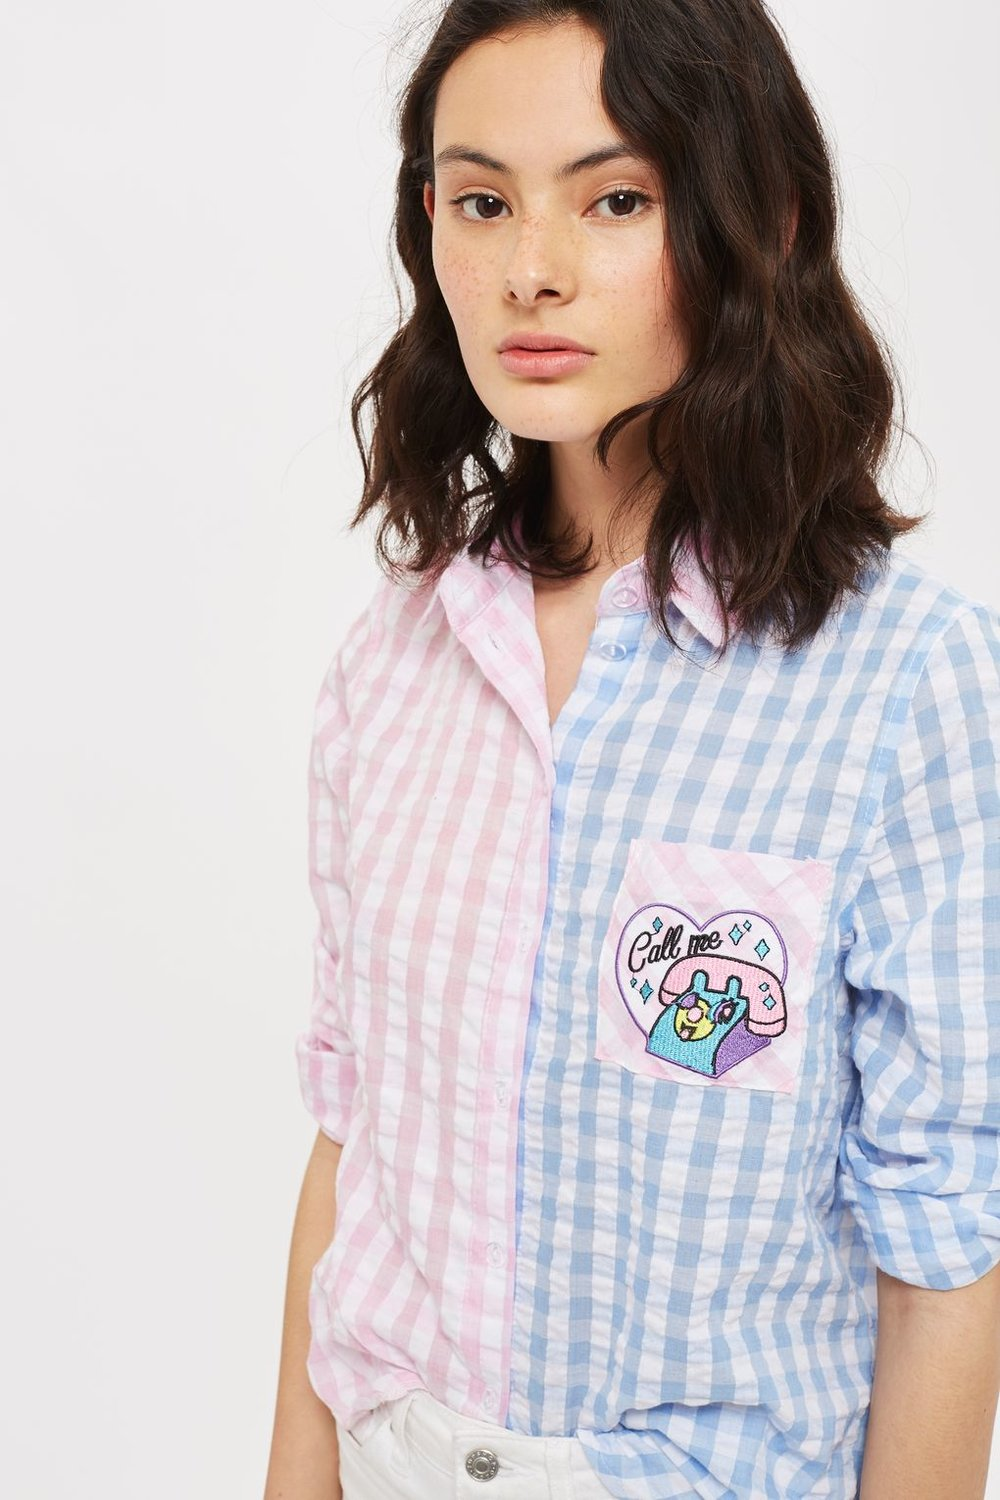 8. Kuccia Call Me gingham shirt - Gingham reminds me of school summer dresses, and the telephone patch reminds me of the Dream Phone game. Perfect 90s vibes.